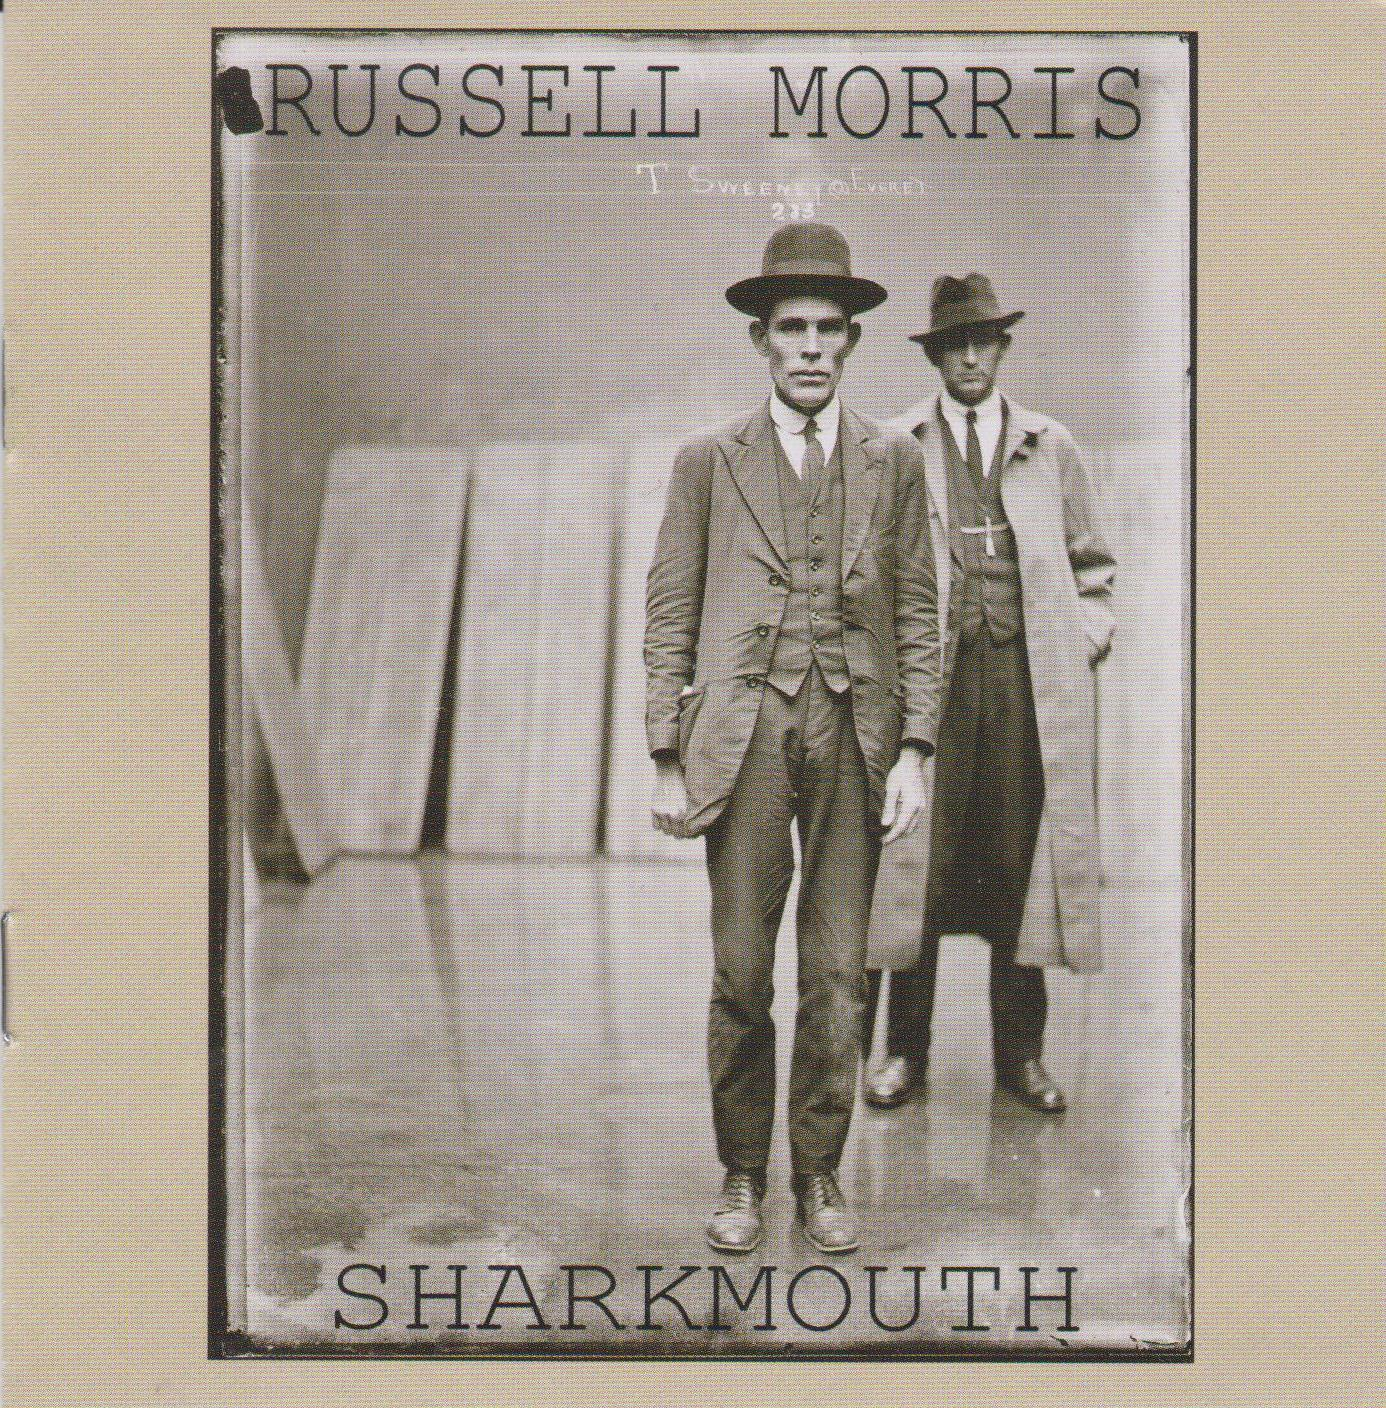 RUSSELL MORRIS 'Sharkmouth' LP - The